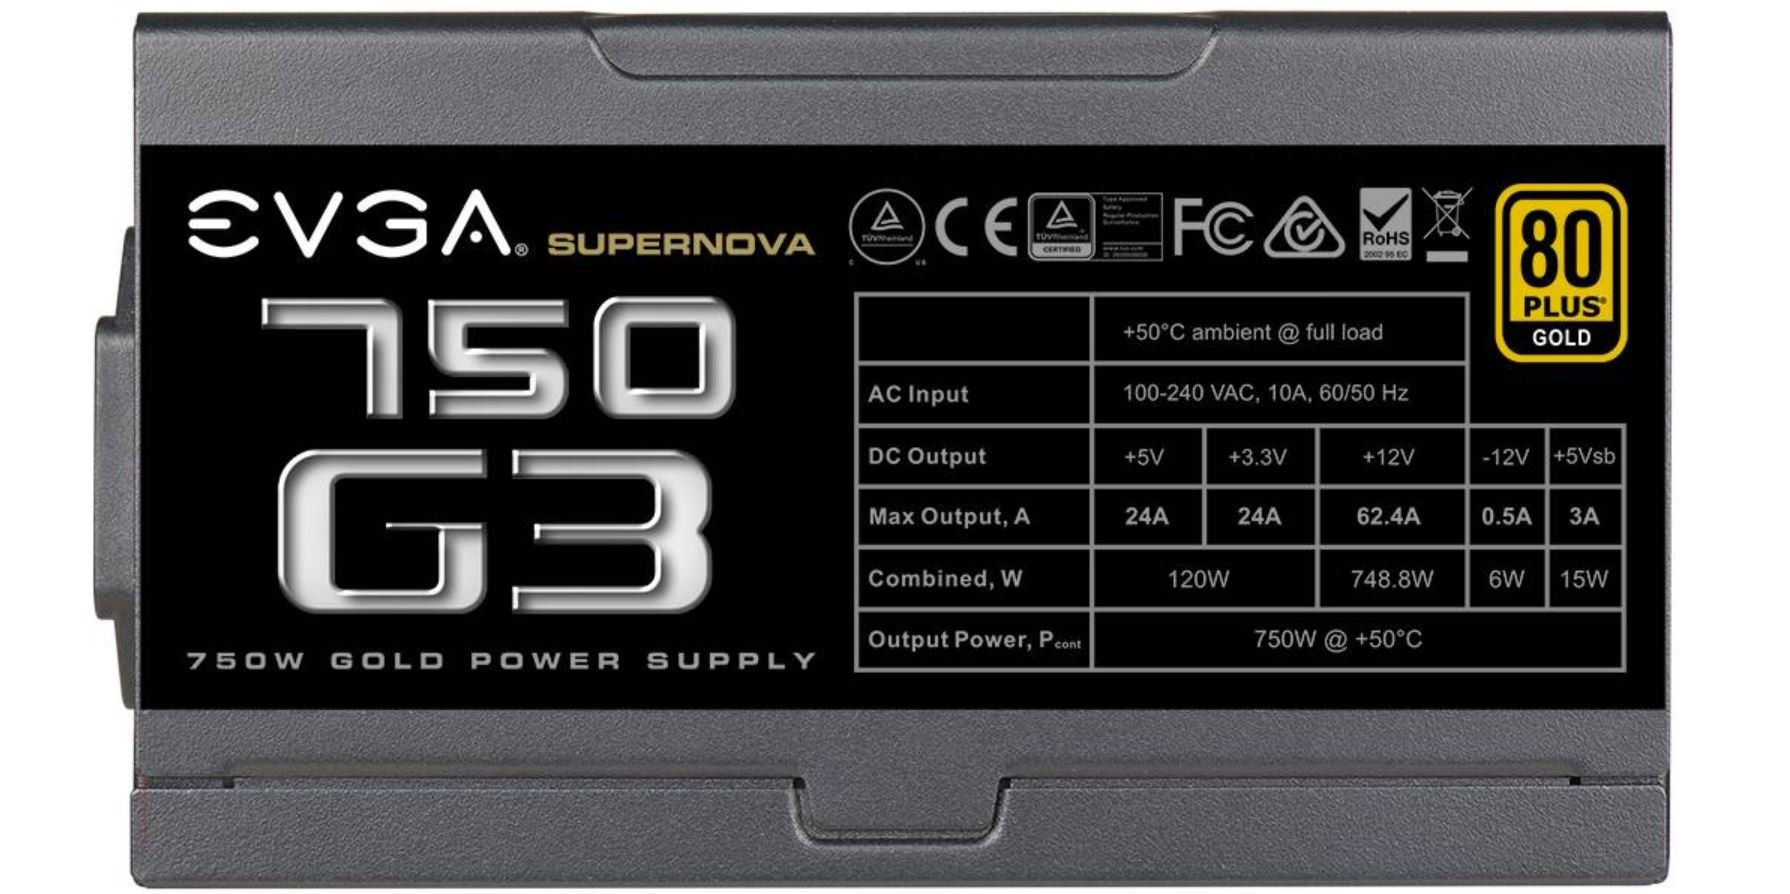 hight resolution of you can find affordable power supplies in each of the tiers though you may need to wait for sales to score tier 1 units at a great price